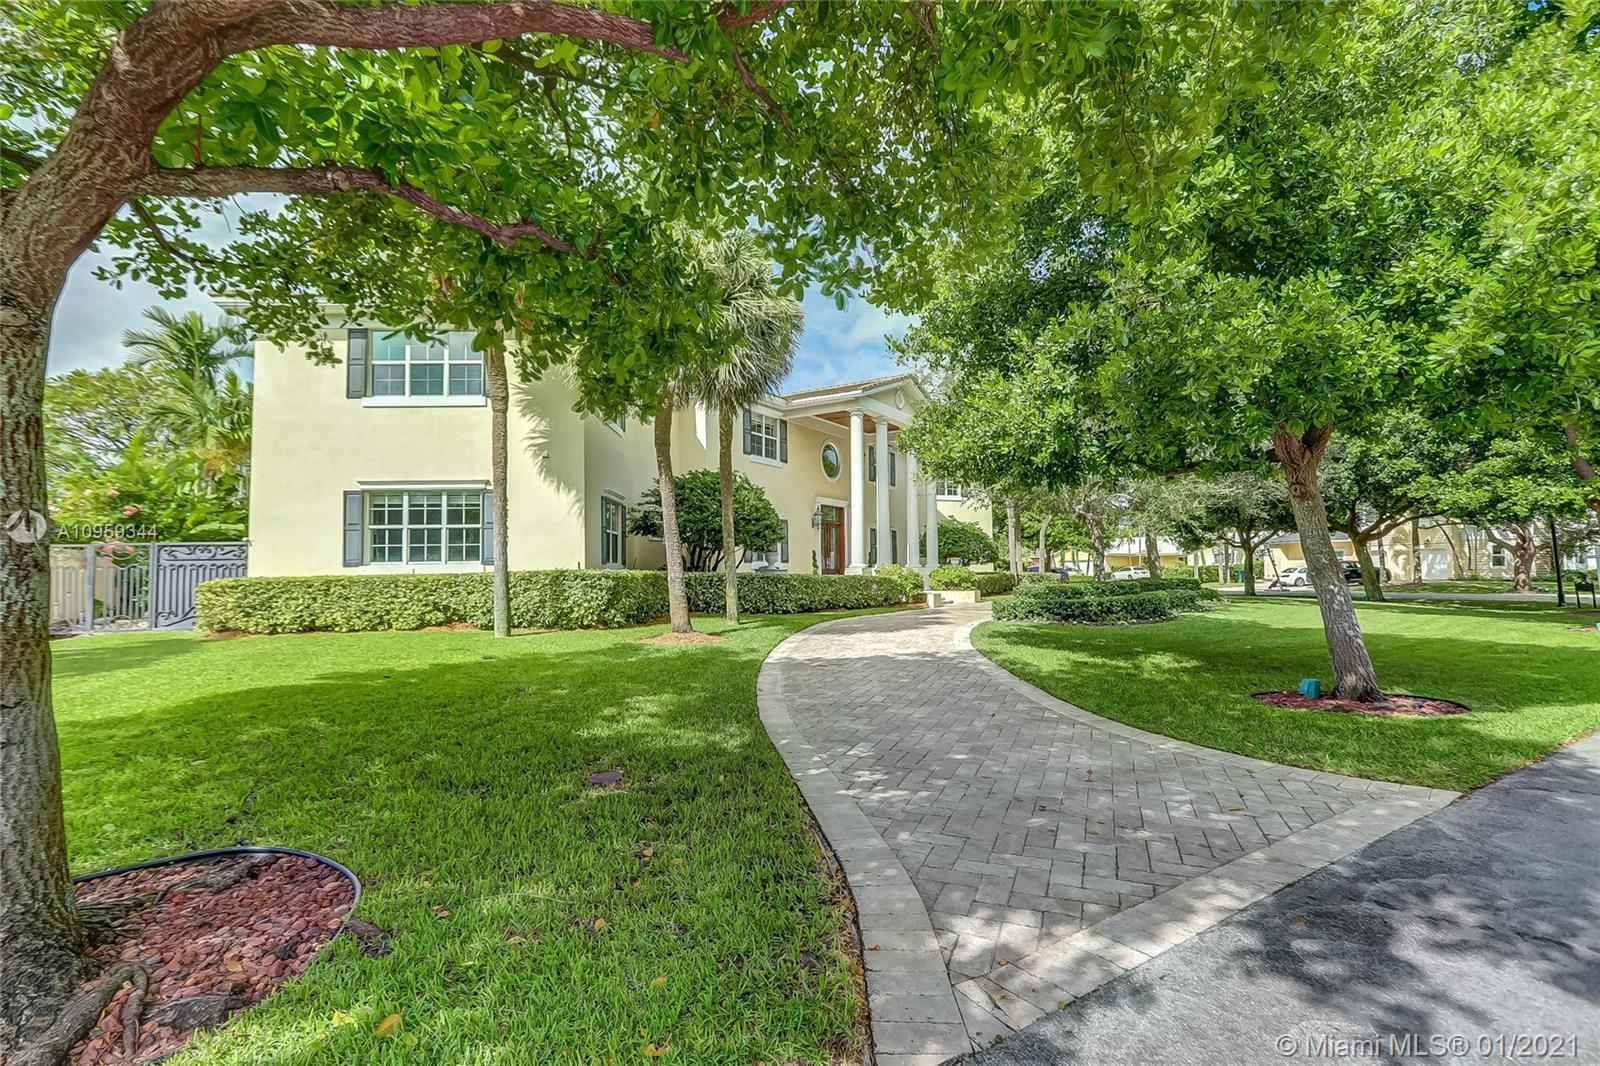 Highly desirable Sunrise Intracoastal gated community, top rated Bayview School District.  Walk to beach, Galleria Mall, entertainment & restaurants.  This extremely versatile large residence sits on a corner lot, built in 2007, great for entertaining w/huge covered marble terrace with summer kitchen: wet bar, grill, storage, fridge. Generator. 1st level: Tall ceiling foyer entry, large open kitchen with walk in pantry, family room, 2 half baths, 1 bedroom with ensuite bath, room with 3 individual office stations (could be 5th Bedroom),  game room with pool table, private formal dining room, piano room.  2nd level: Master Suite w/oversize sitting area/living room (could be split into 6th bedroom),  media room/entertainment complete with full bar, icemaker, dishwasher and refrigerator.